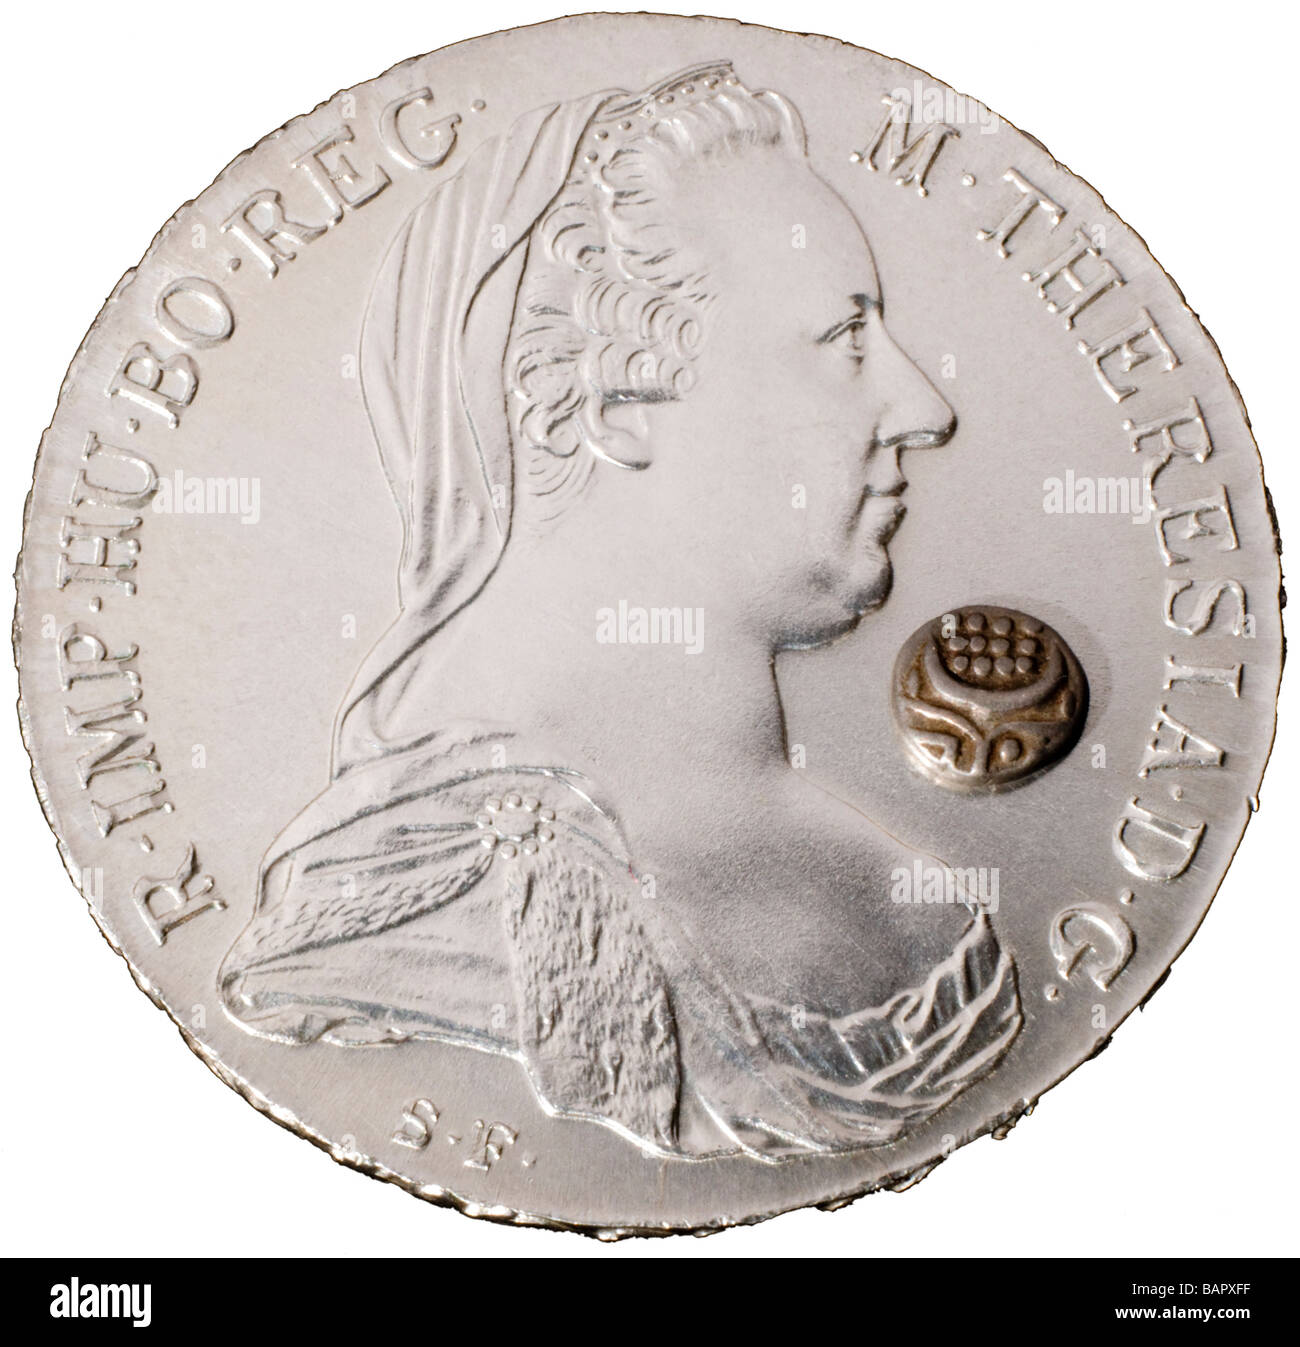 Maria Theresa Austrian Silver Thaler and tiny Indian silver 1/16th Rupee. Contrasting coin sizes - Stock Image